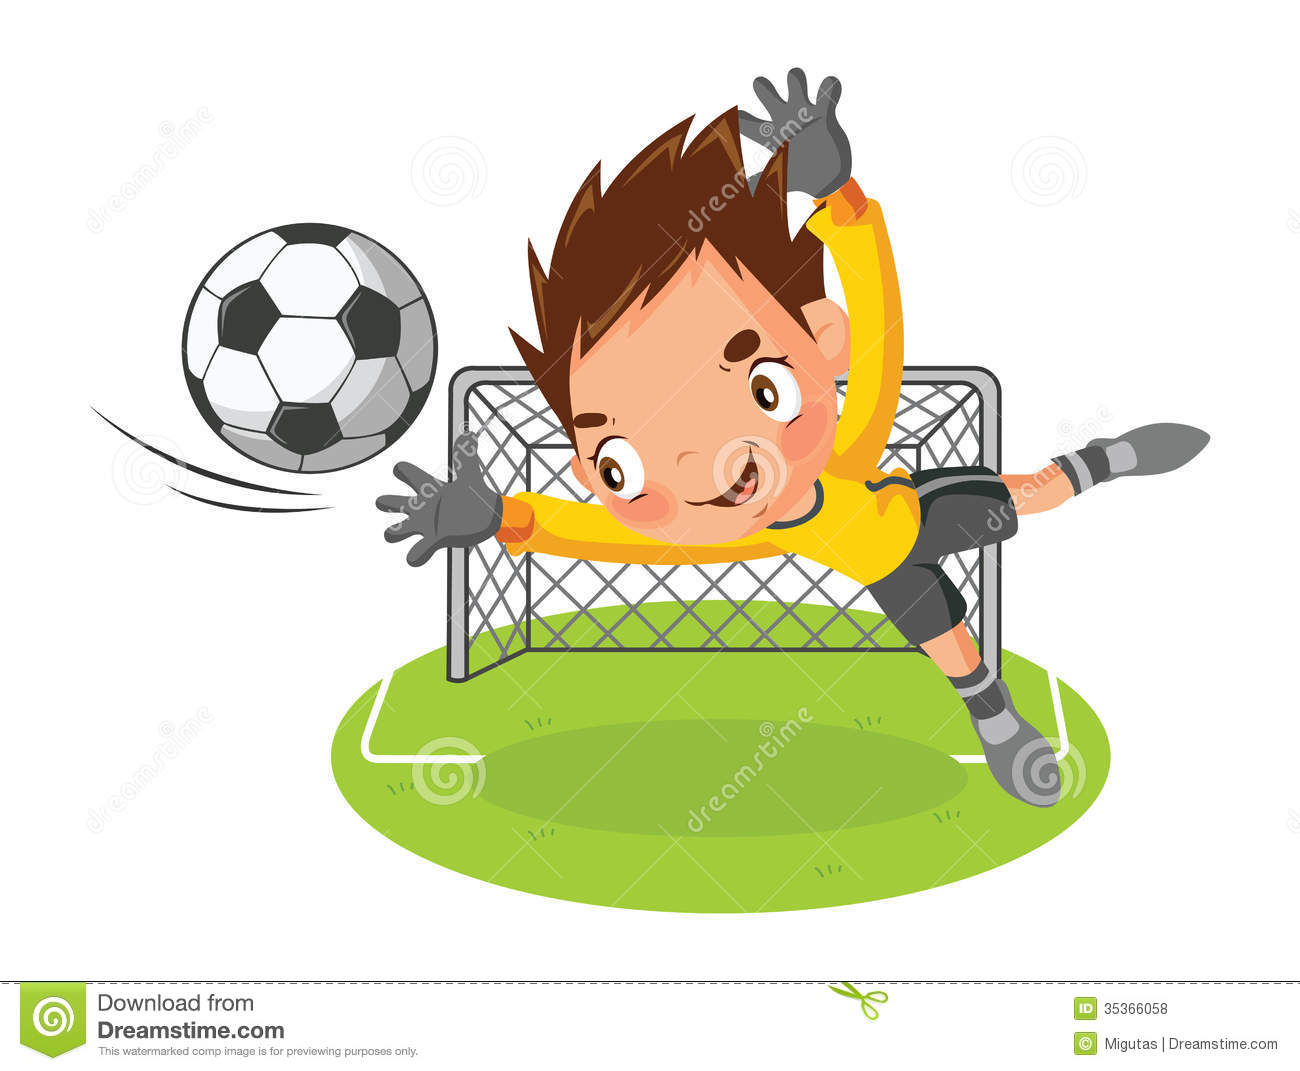 Football clipart goalie Goalie Photos Art Royalty clip